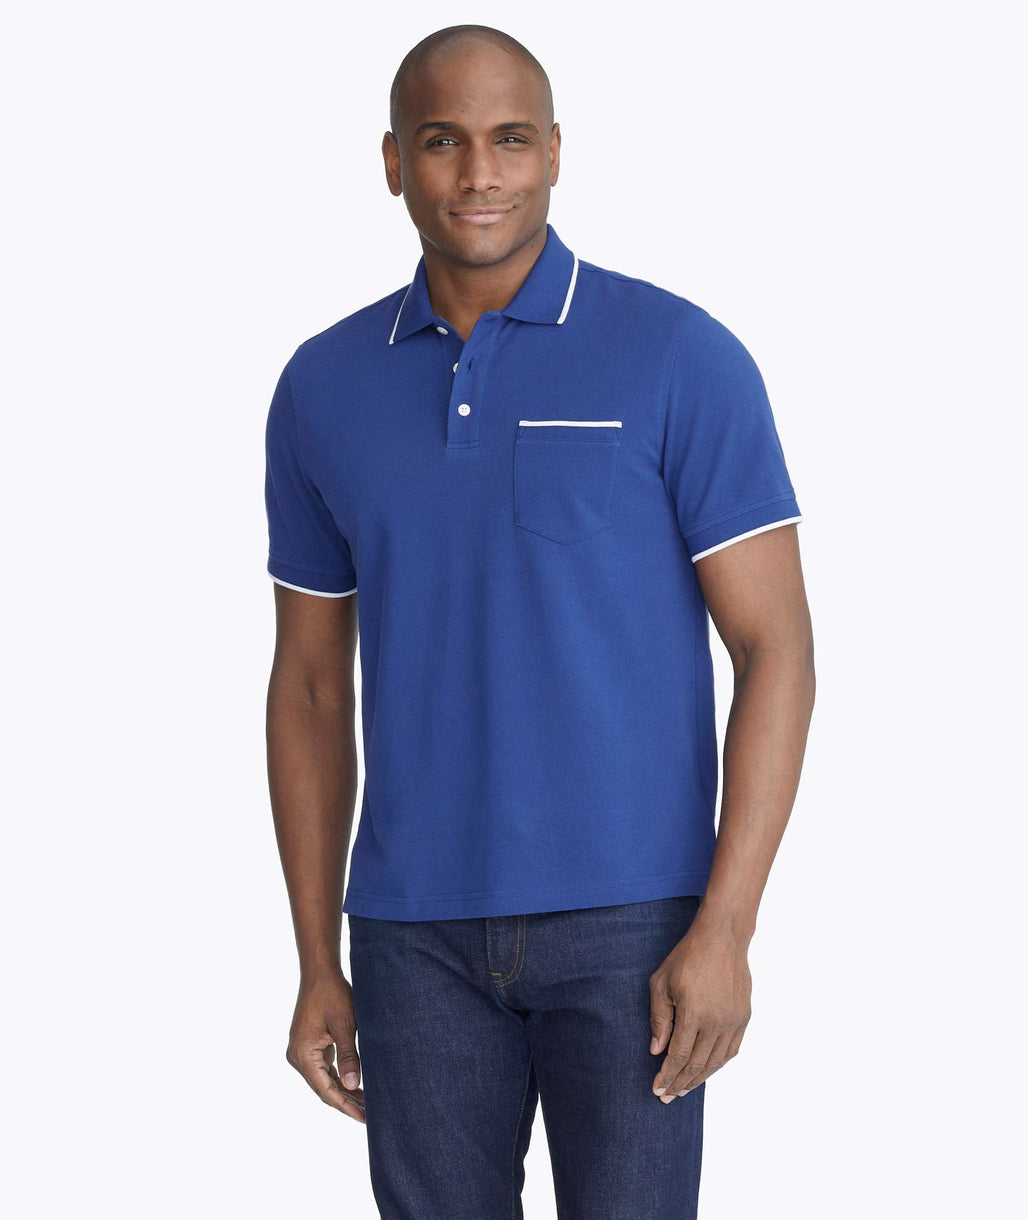 Model wearing a Dark Blue Bar Harbor Tipped Pique Polo